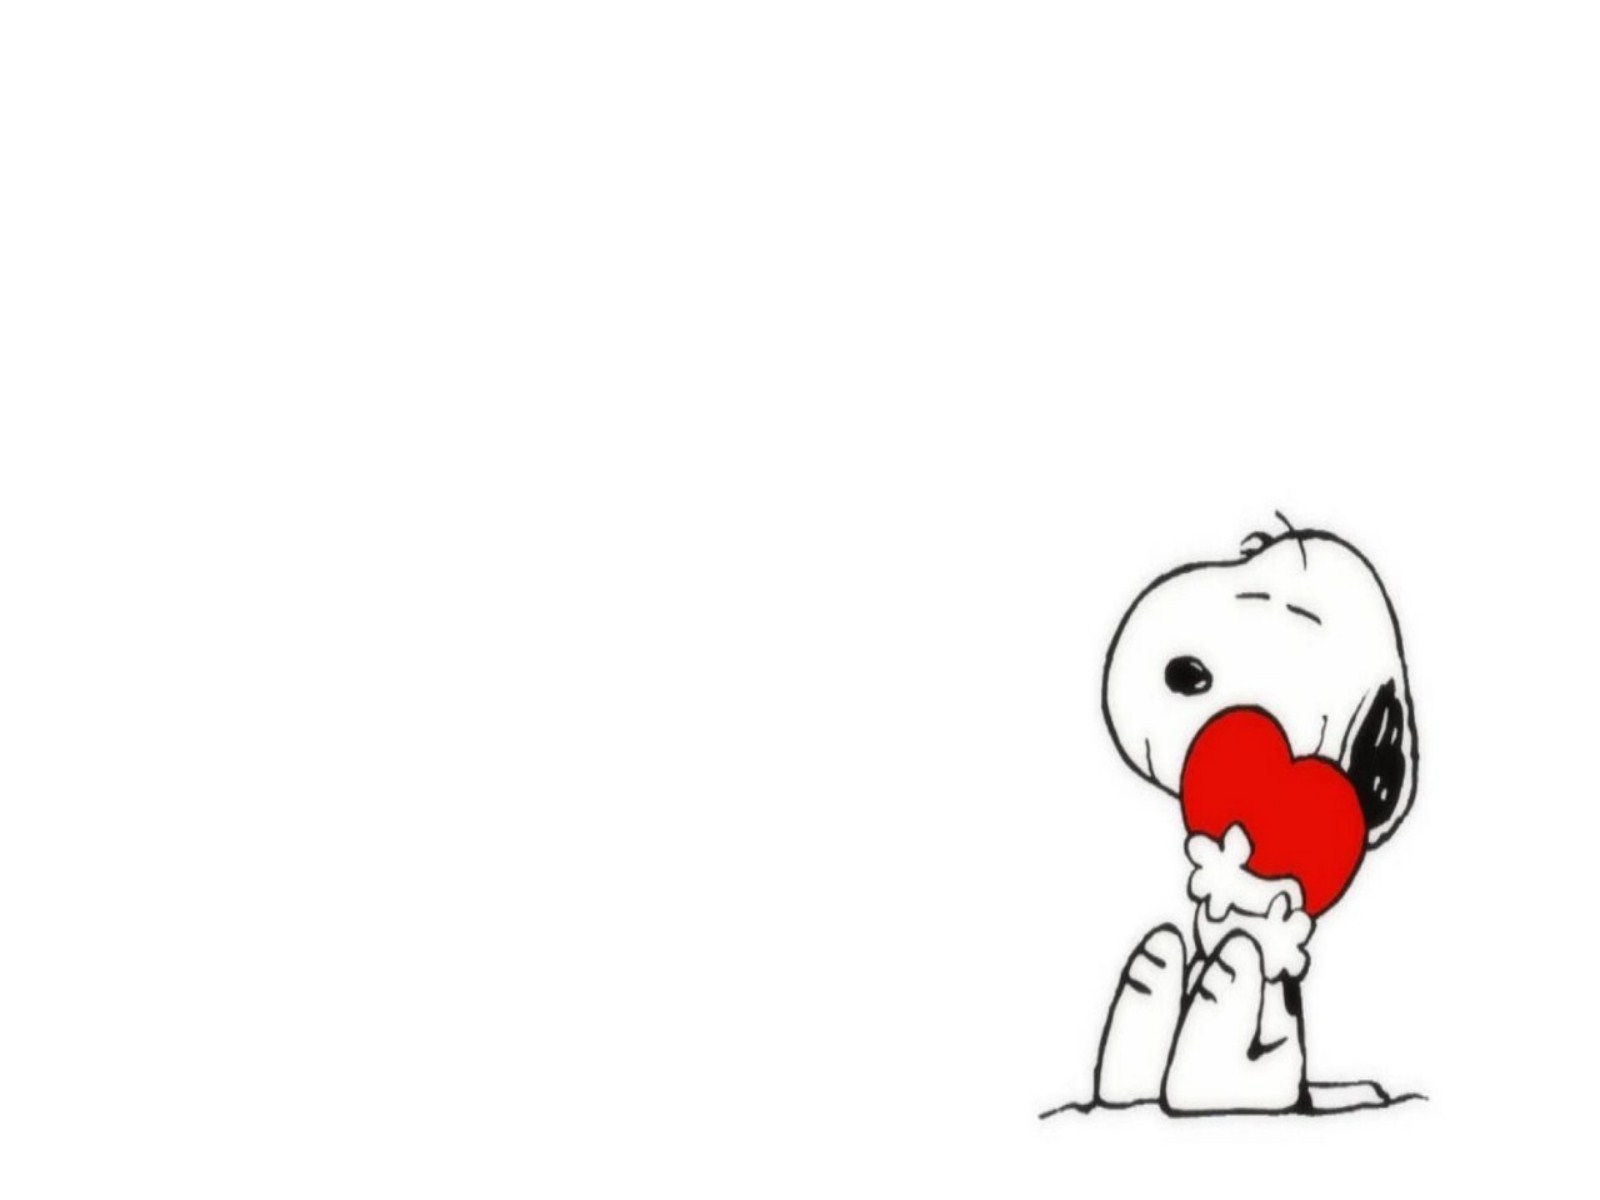 snoopy valentines day wallpaper 2015   Grasscloth Wallpaper 1600x1200